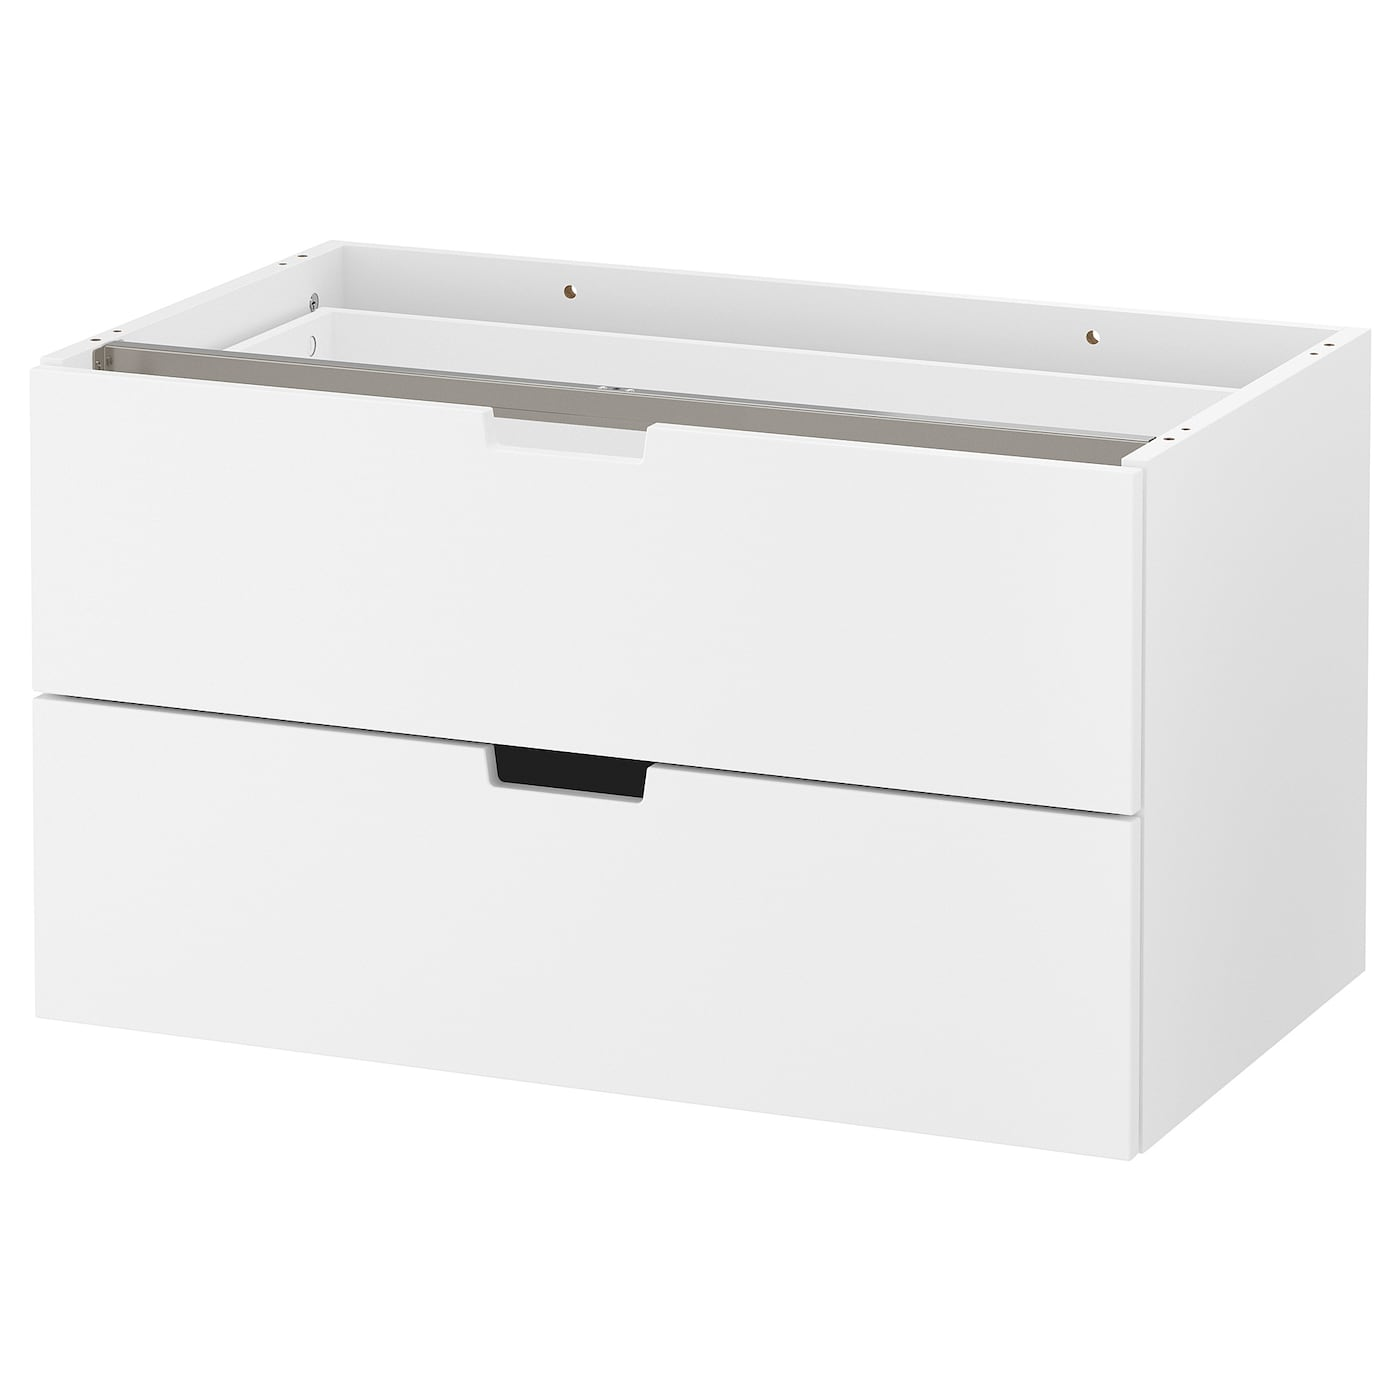 IKEA NORDLI modular chest of 2 drawers